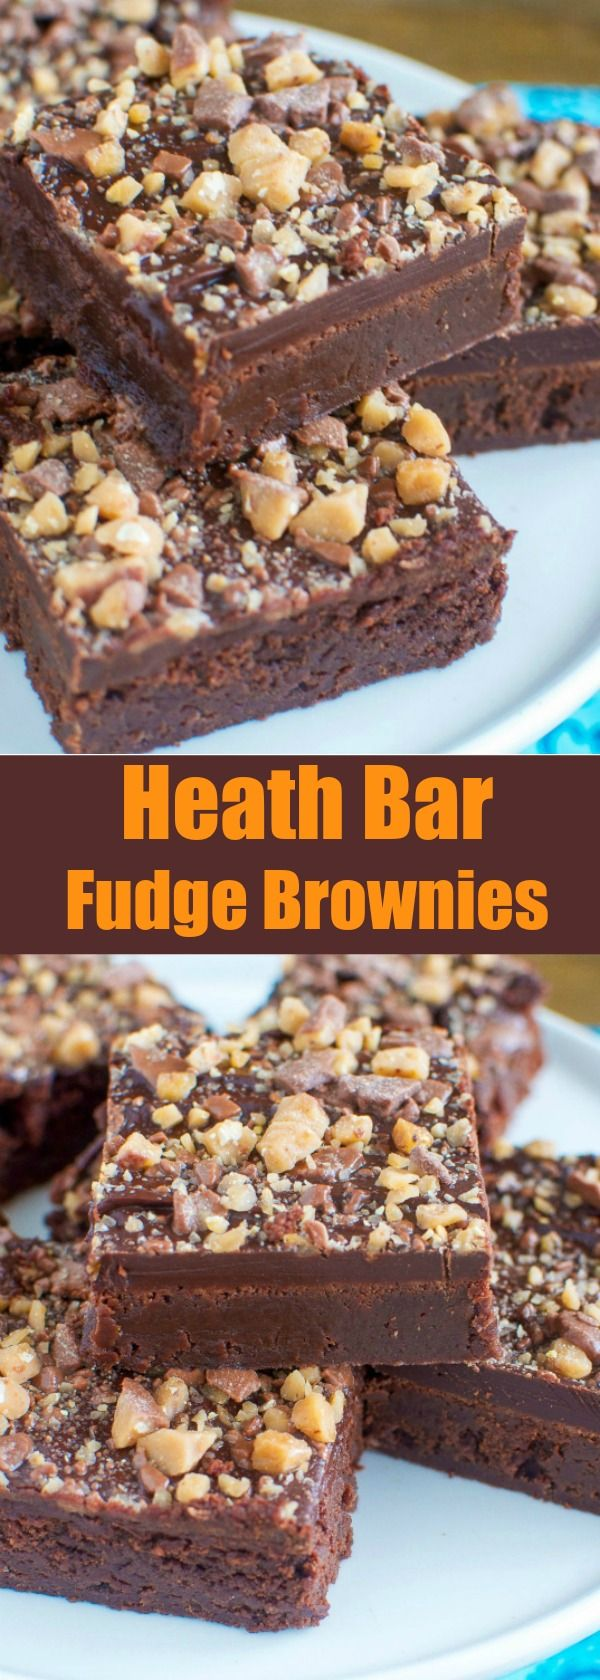 Heath Bar Fudge Brownies - quite possibly the BEST homemade brownies EVER!!